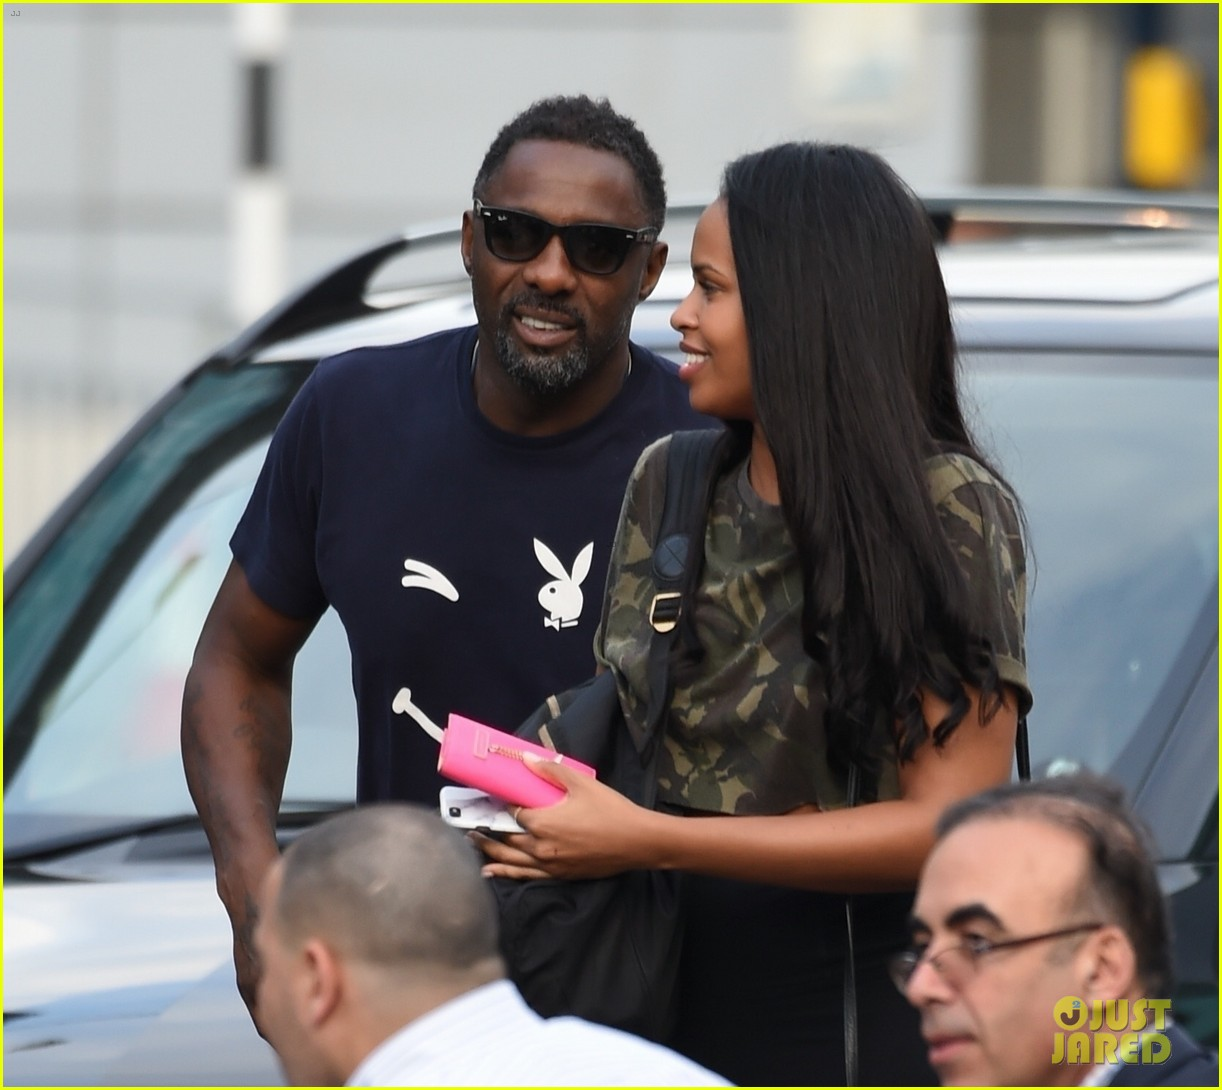 idris elba steps out with mystery woman at manchester airport 013947735